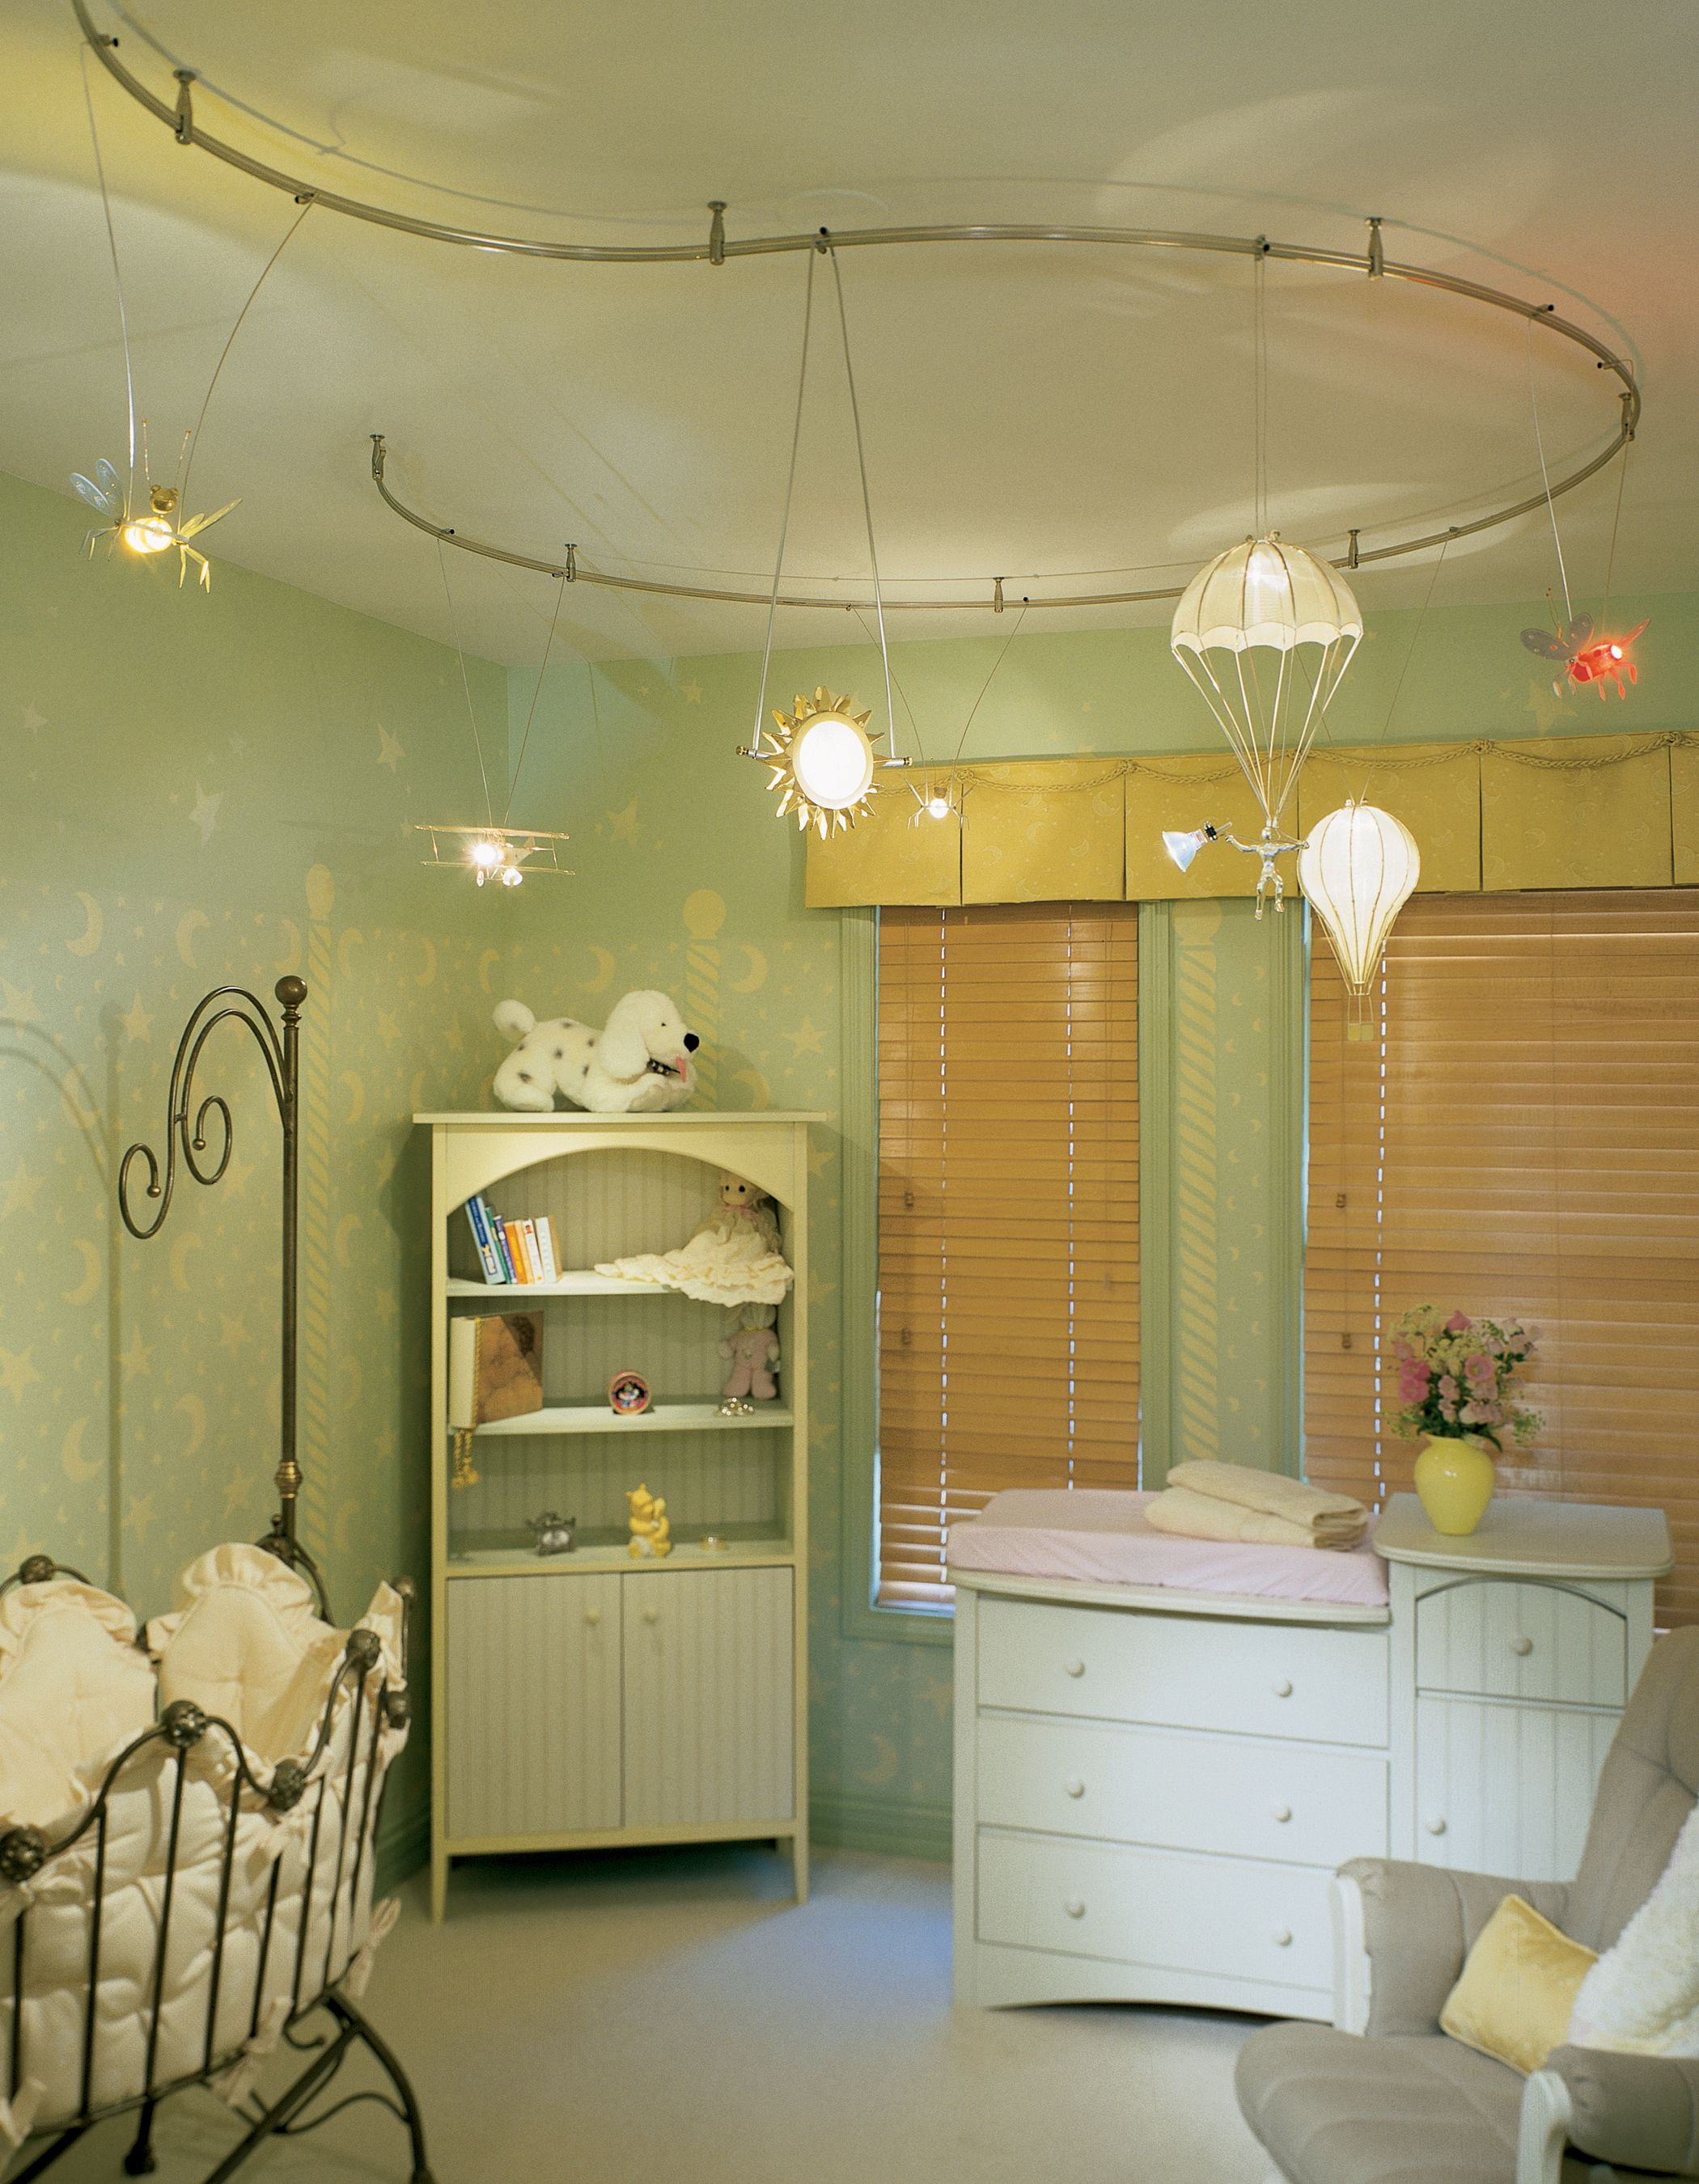 Monorail Lighting In A Nursery